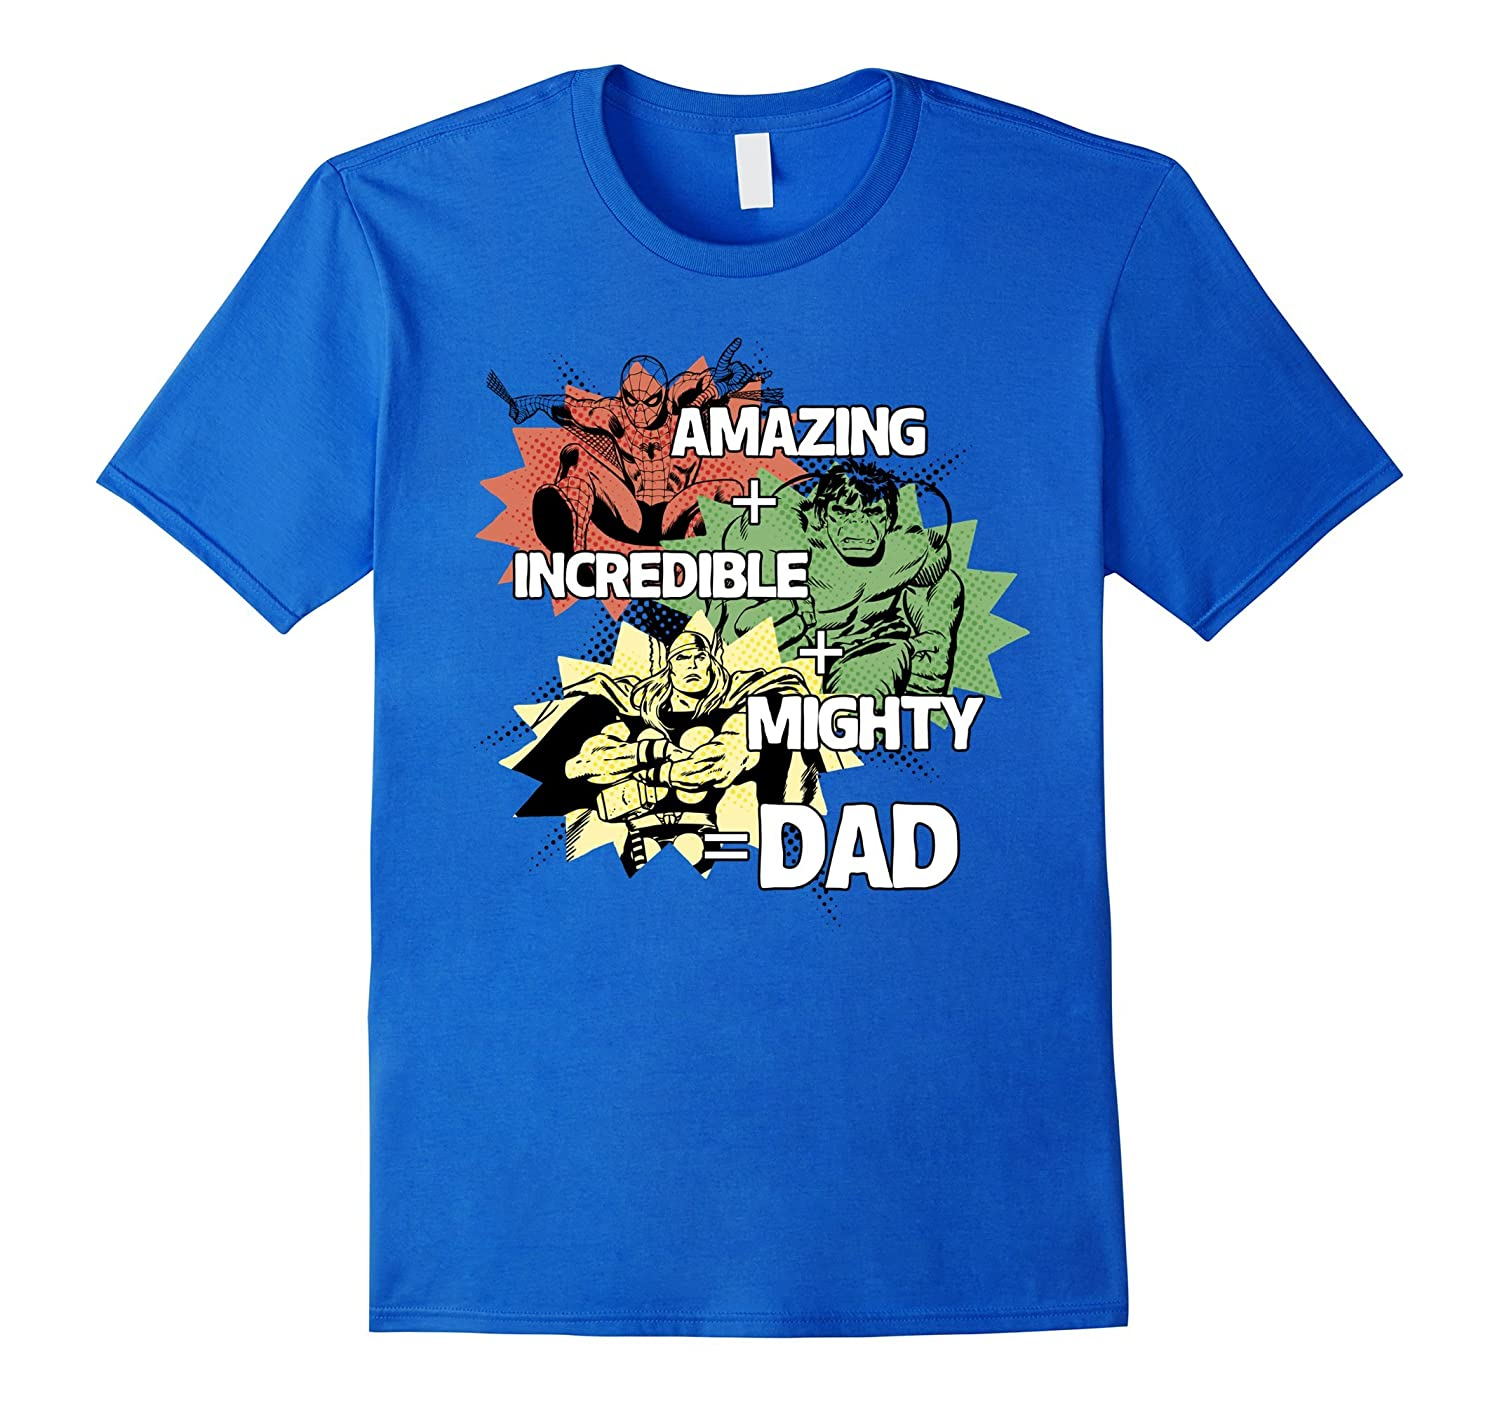 ff7bacef Marvel Avengers Fathers Day Dad Qualities Graphic T-Shirt-PL – Polozatee